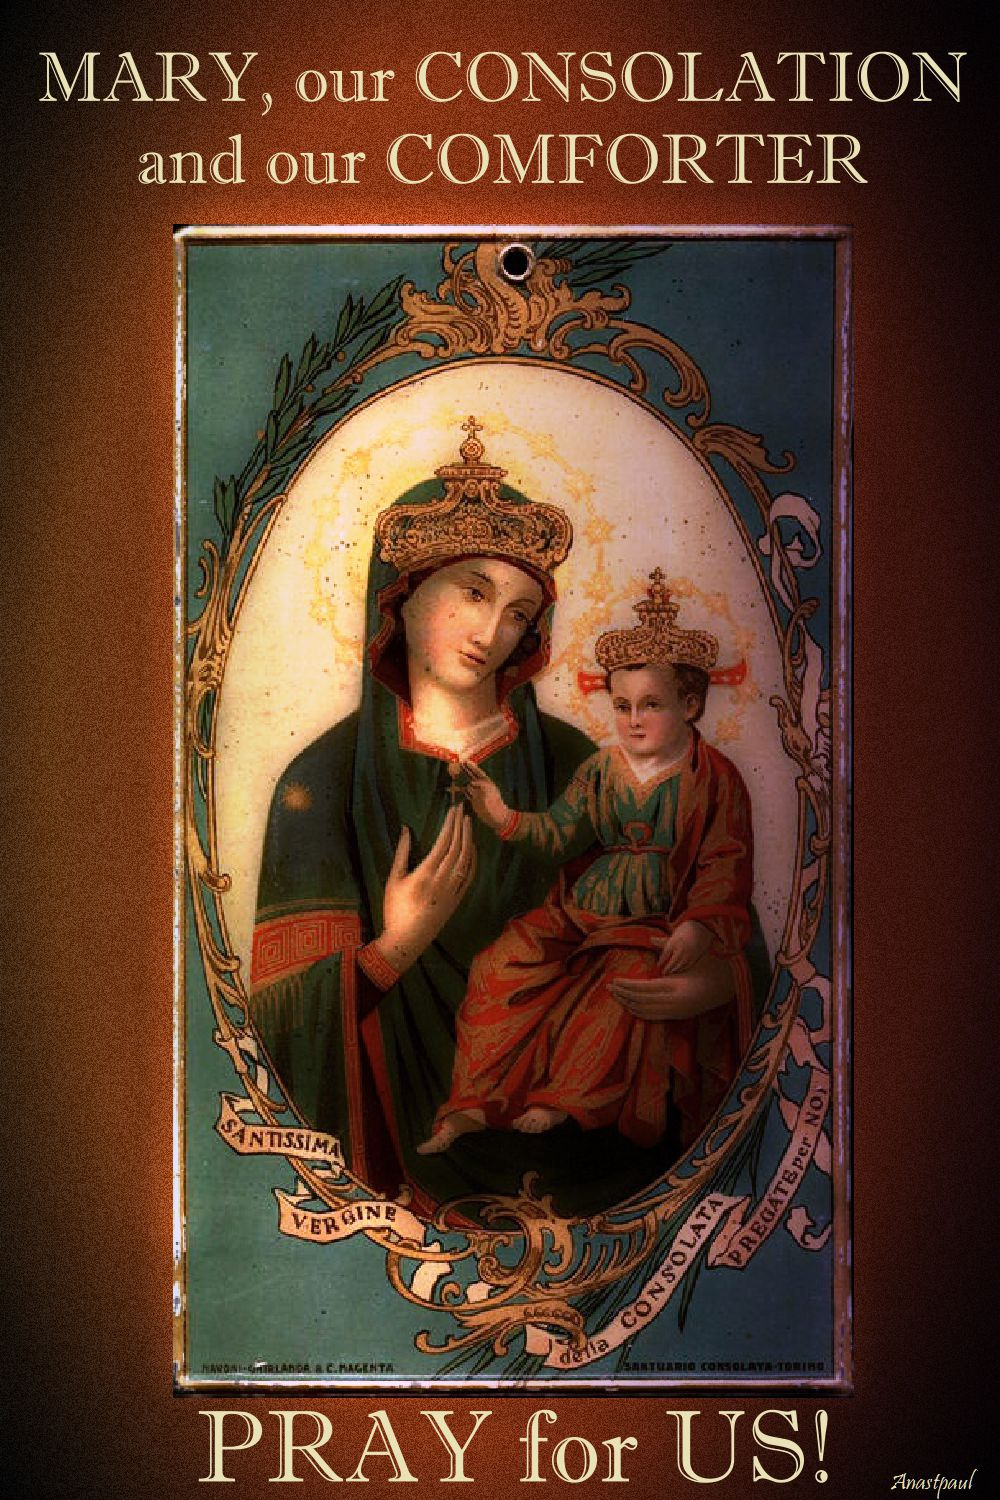 mary our consolation - pray for us